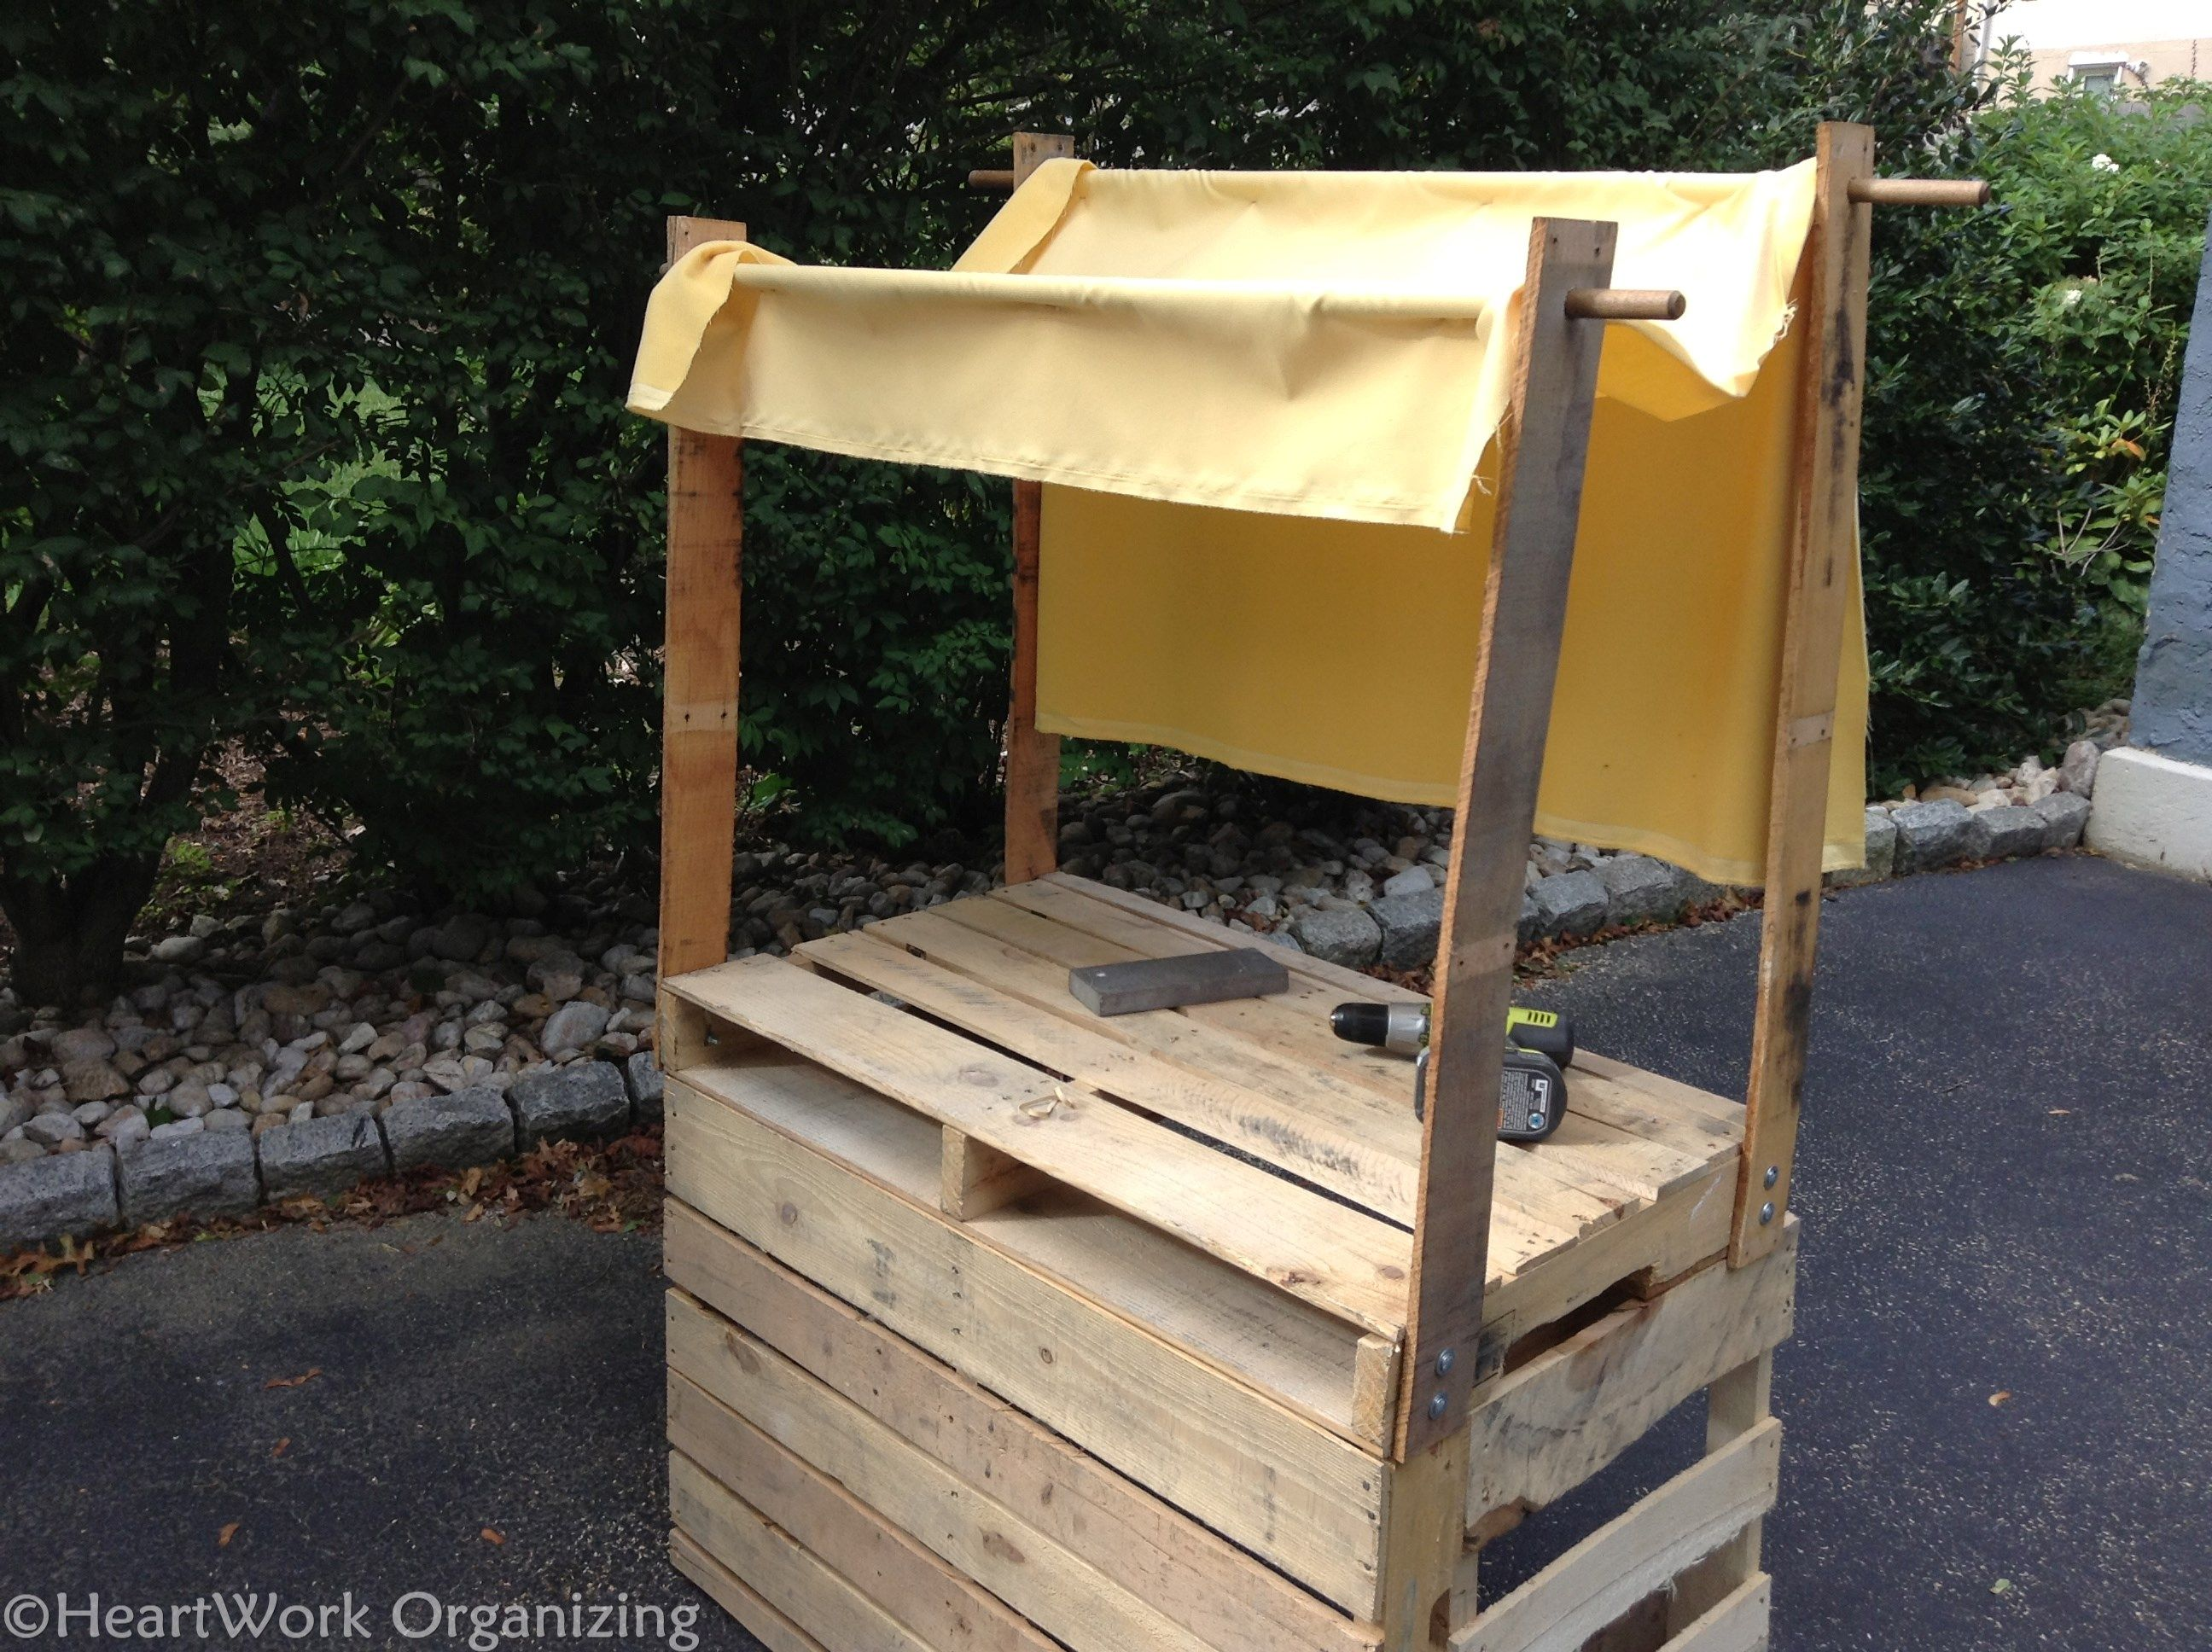 Fabric awning for lemonade stand made from pallets for Pallet lemonade stand plans